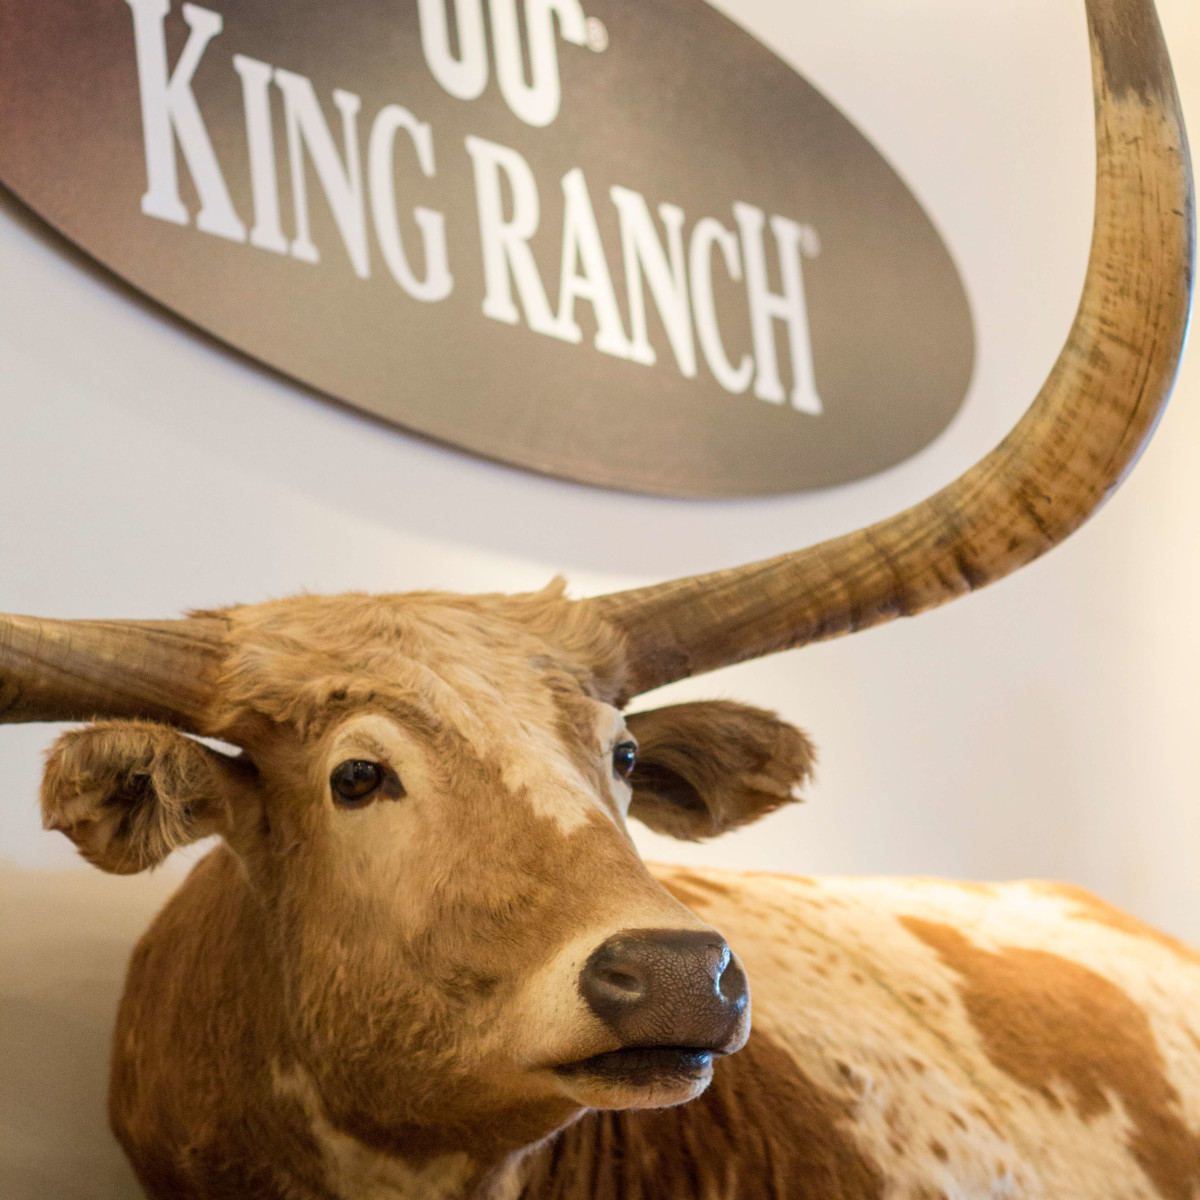 King Ranch Saddle Shop in Houston, August 2016